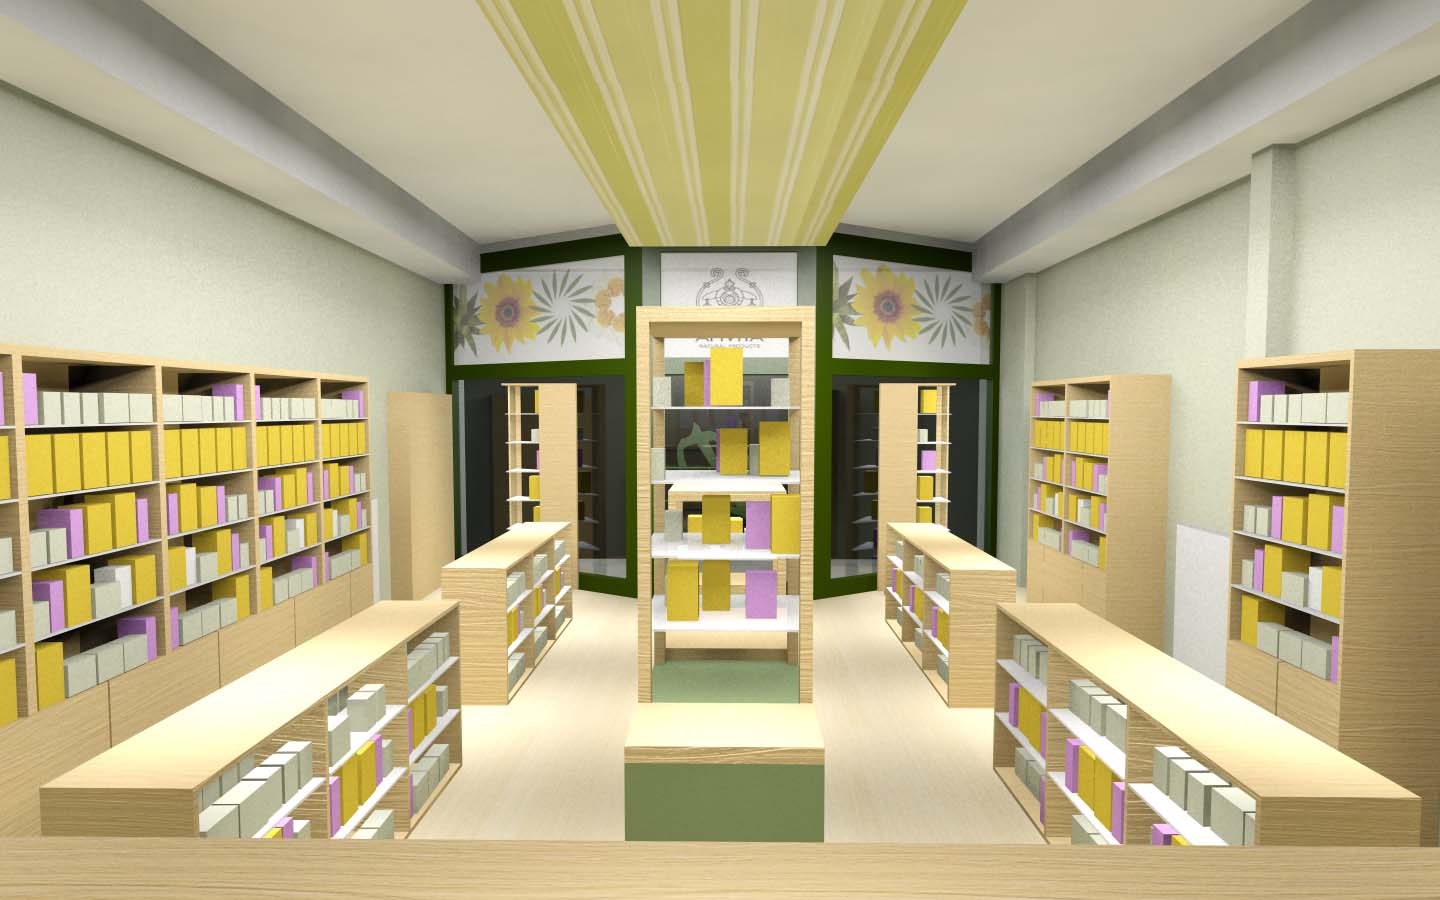 Pharmacy Design Ideas the first sartoretto verna pharmacy in malta is full of light and colour Pharmacy Design